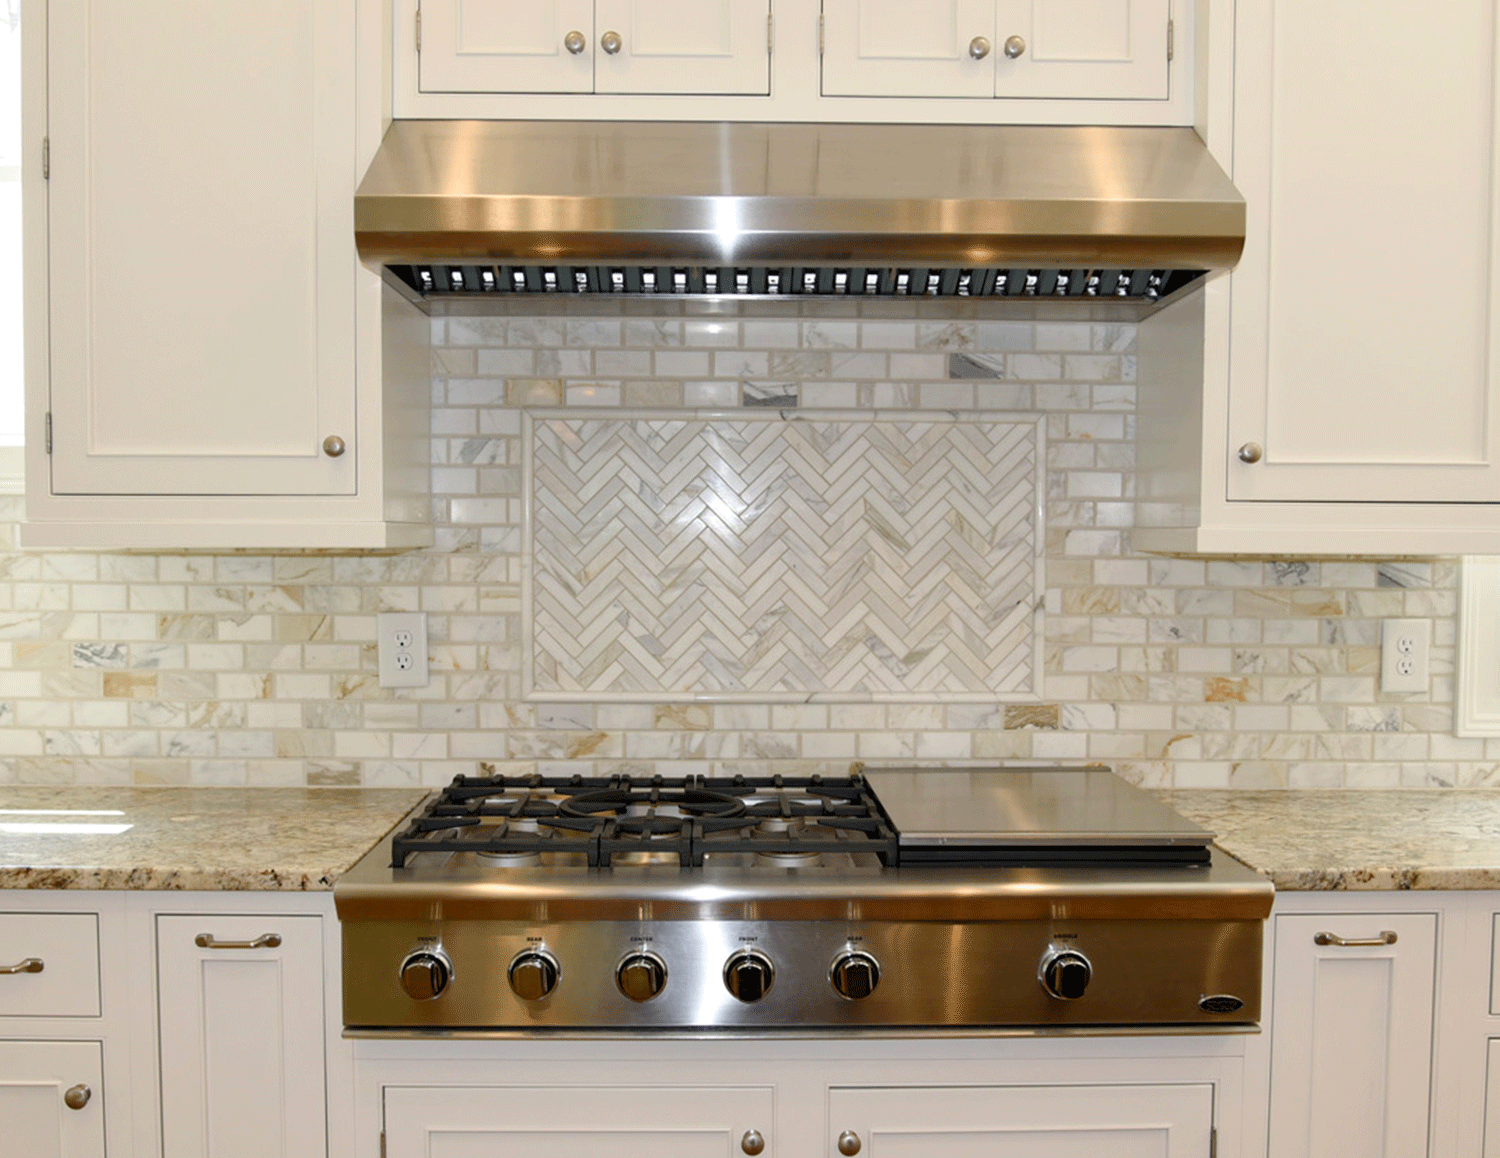 backsplash-Thumb